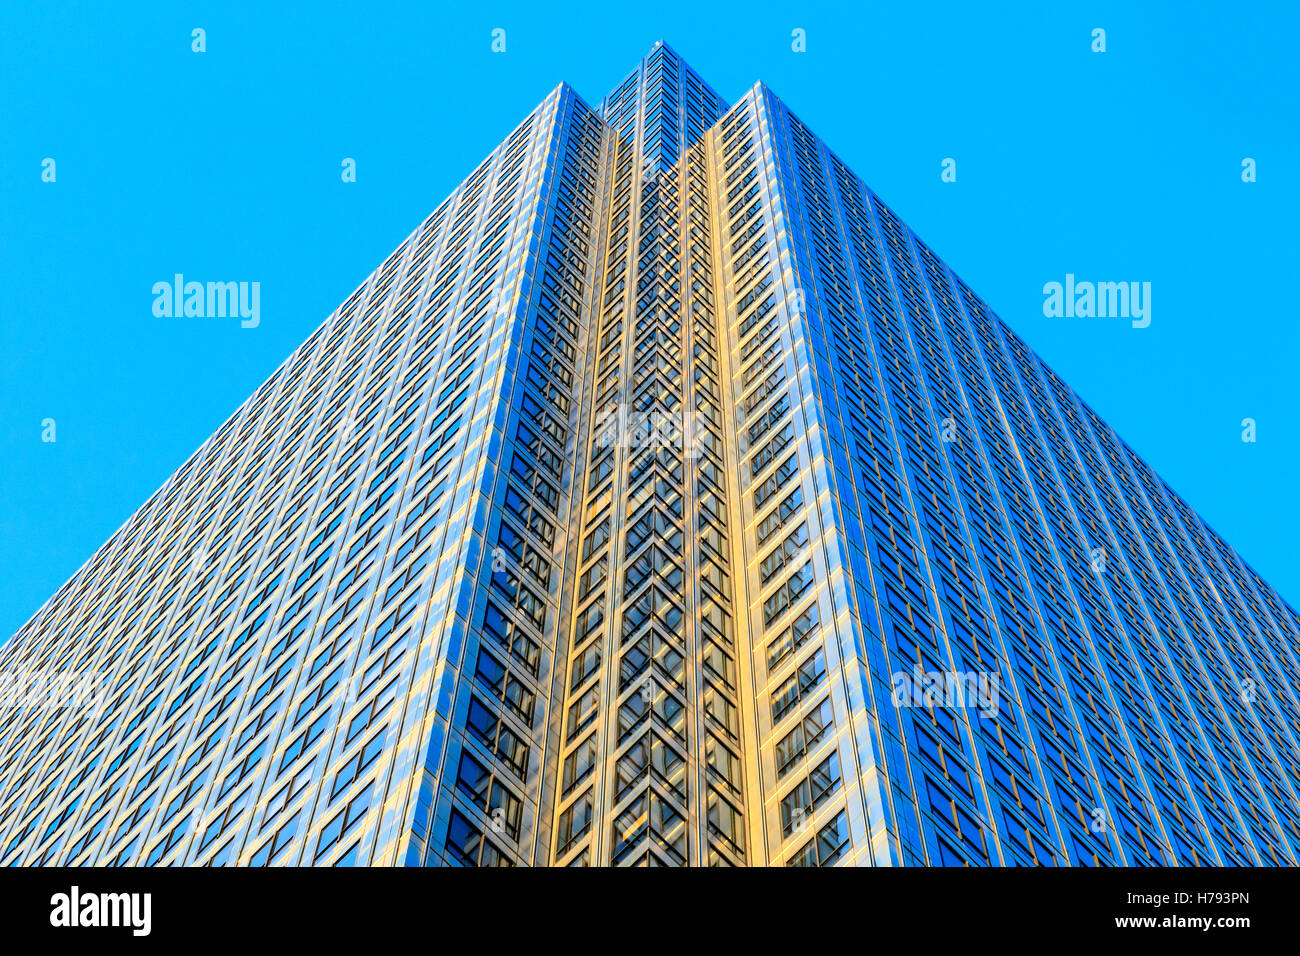 Exterior of One Canada Square in Canary Wharf, financial district in London - Stock Image